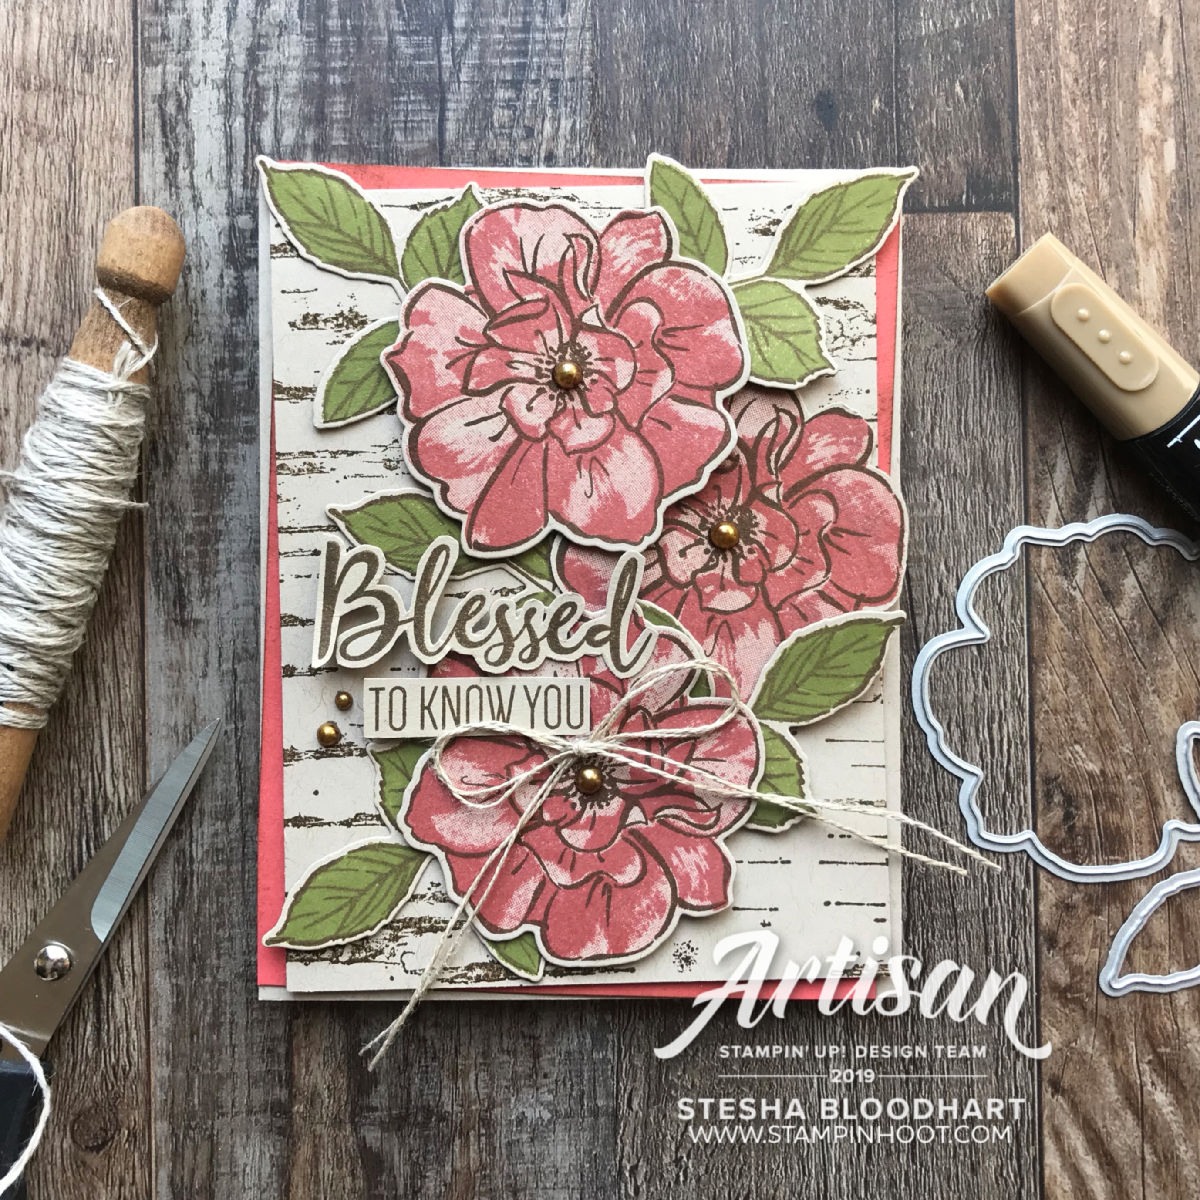 To A Wild Rose Bundle & Terracotta Tile In Color from Stampin' Up! Card by 2019 Artisan Design Team Memeber, Stesha Bloodhart, Stampin' Hoot!